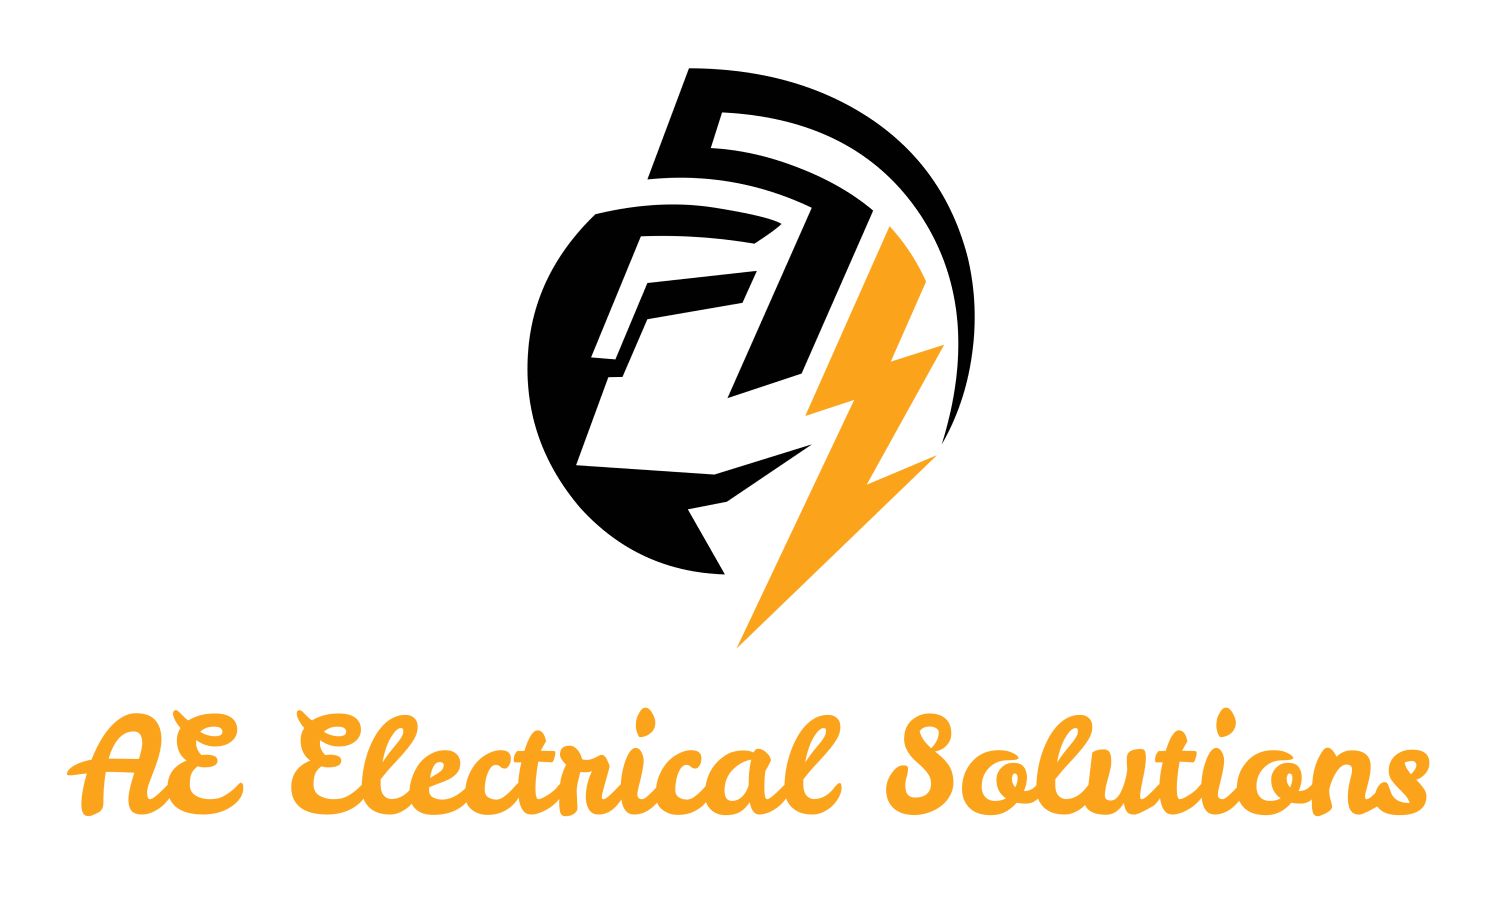 AE Electrical Solutions primary image